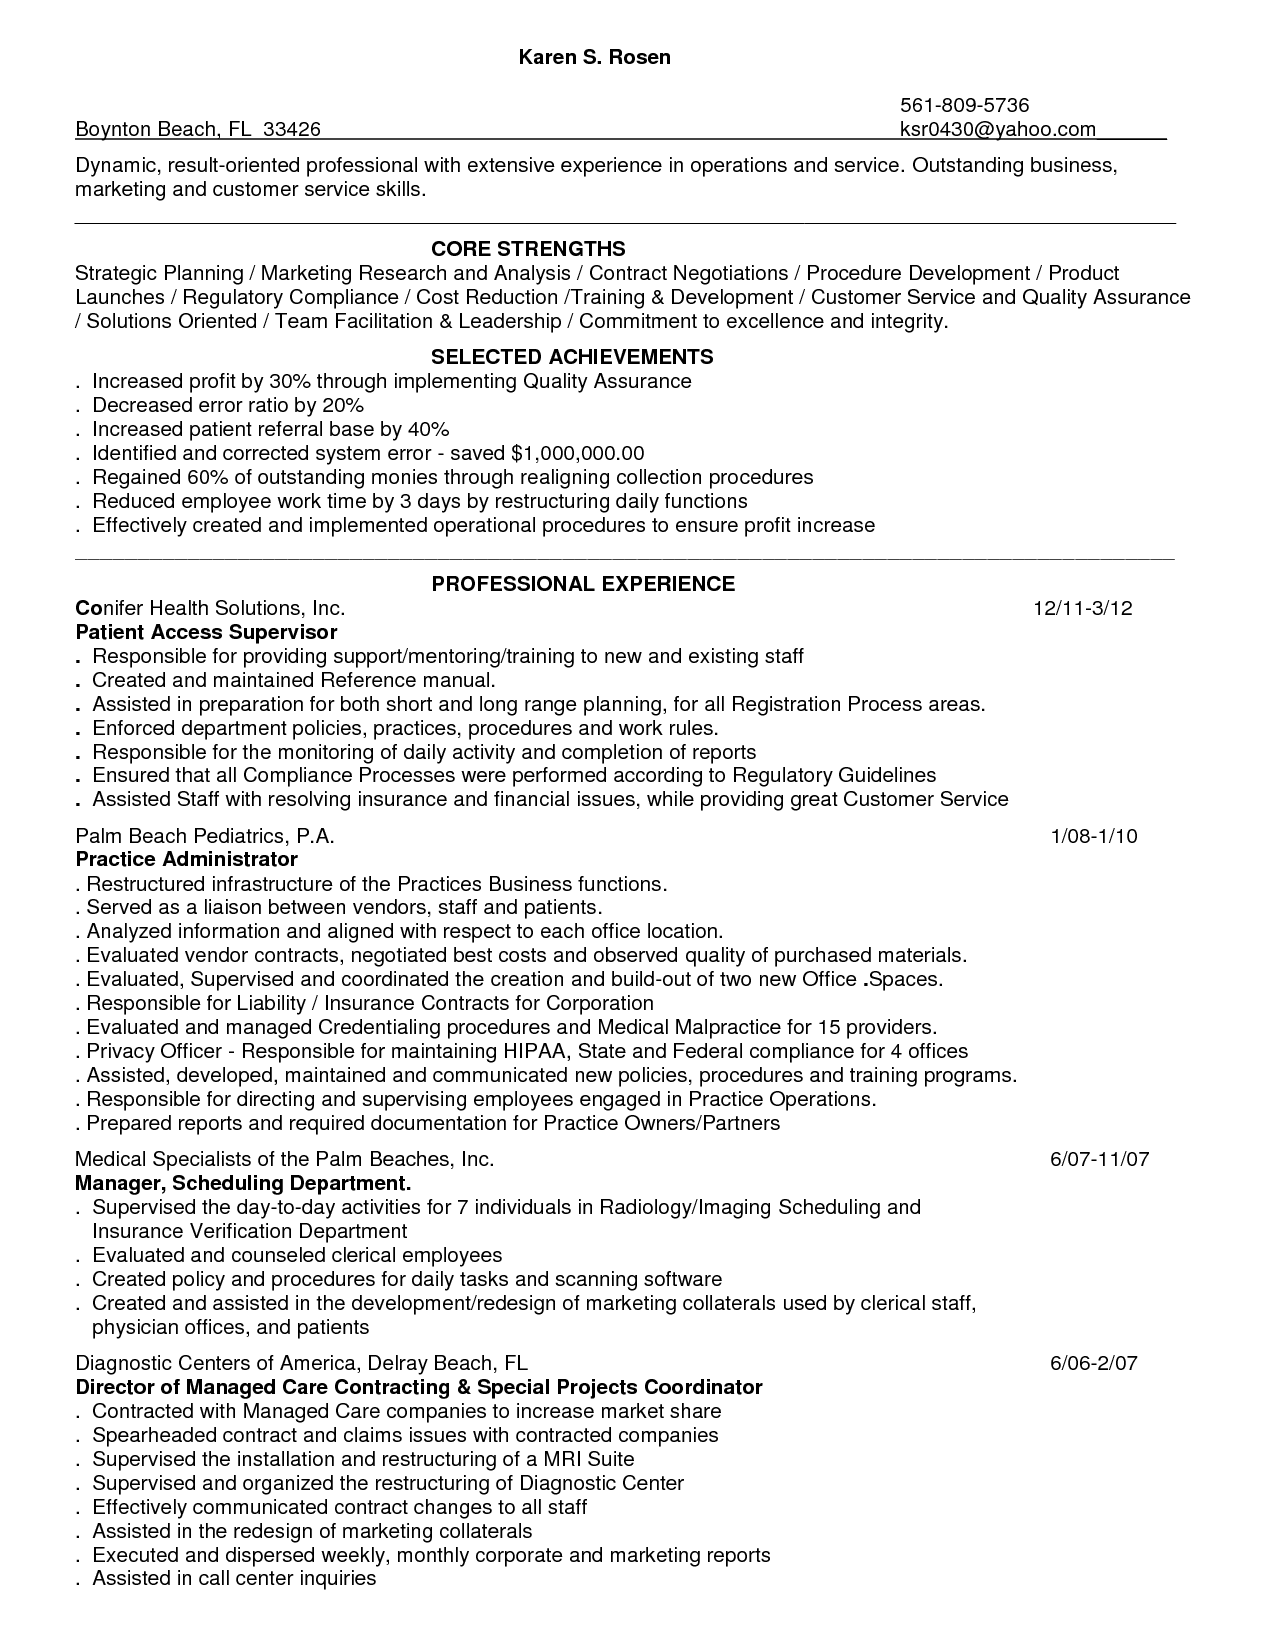 core skills for customer service resume skills for a customer service resume customer service resumes resume skills for customer service skills profile